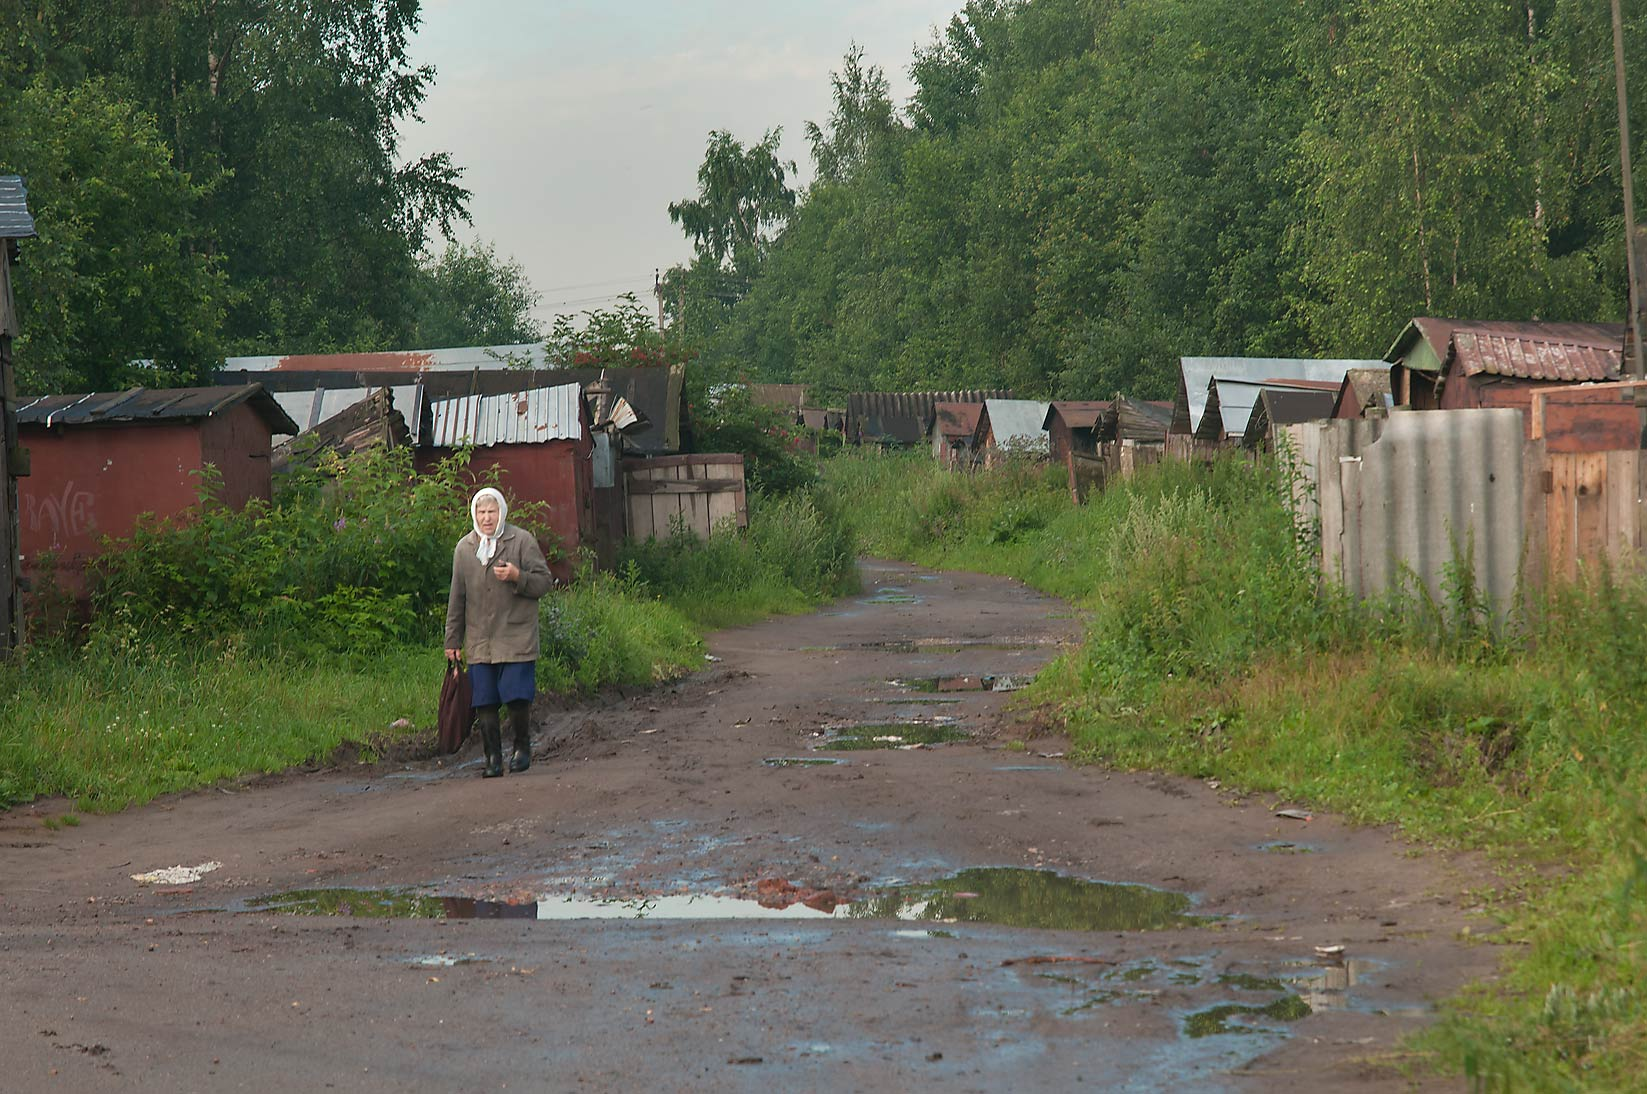 Shacks (old garages) in Lavriki, 2 miles north from St.Petersburg. Russia